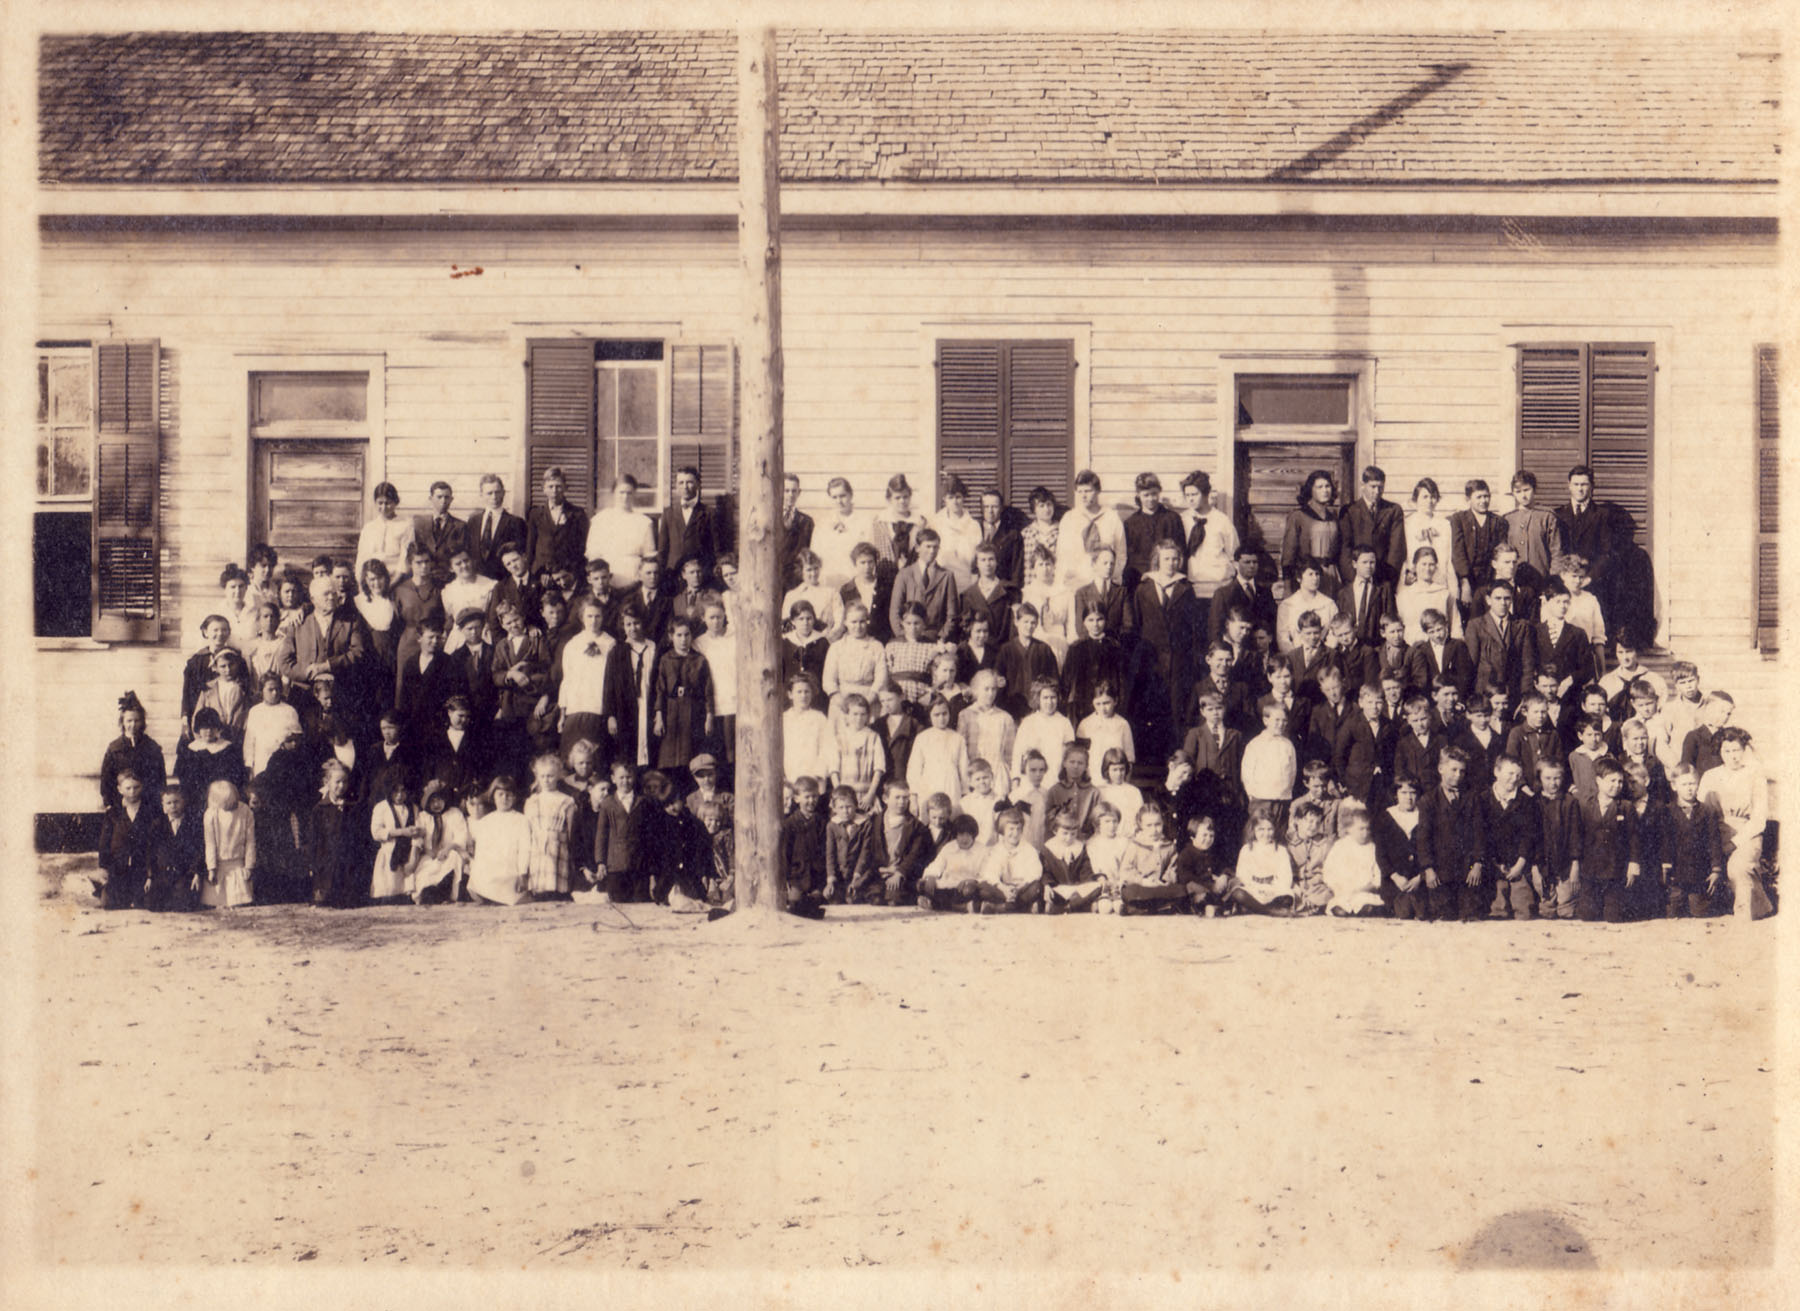 Original Blythewood School about 1900